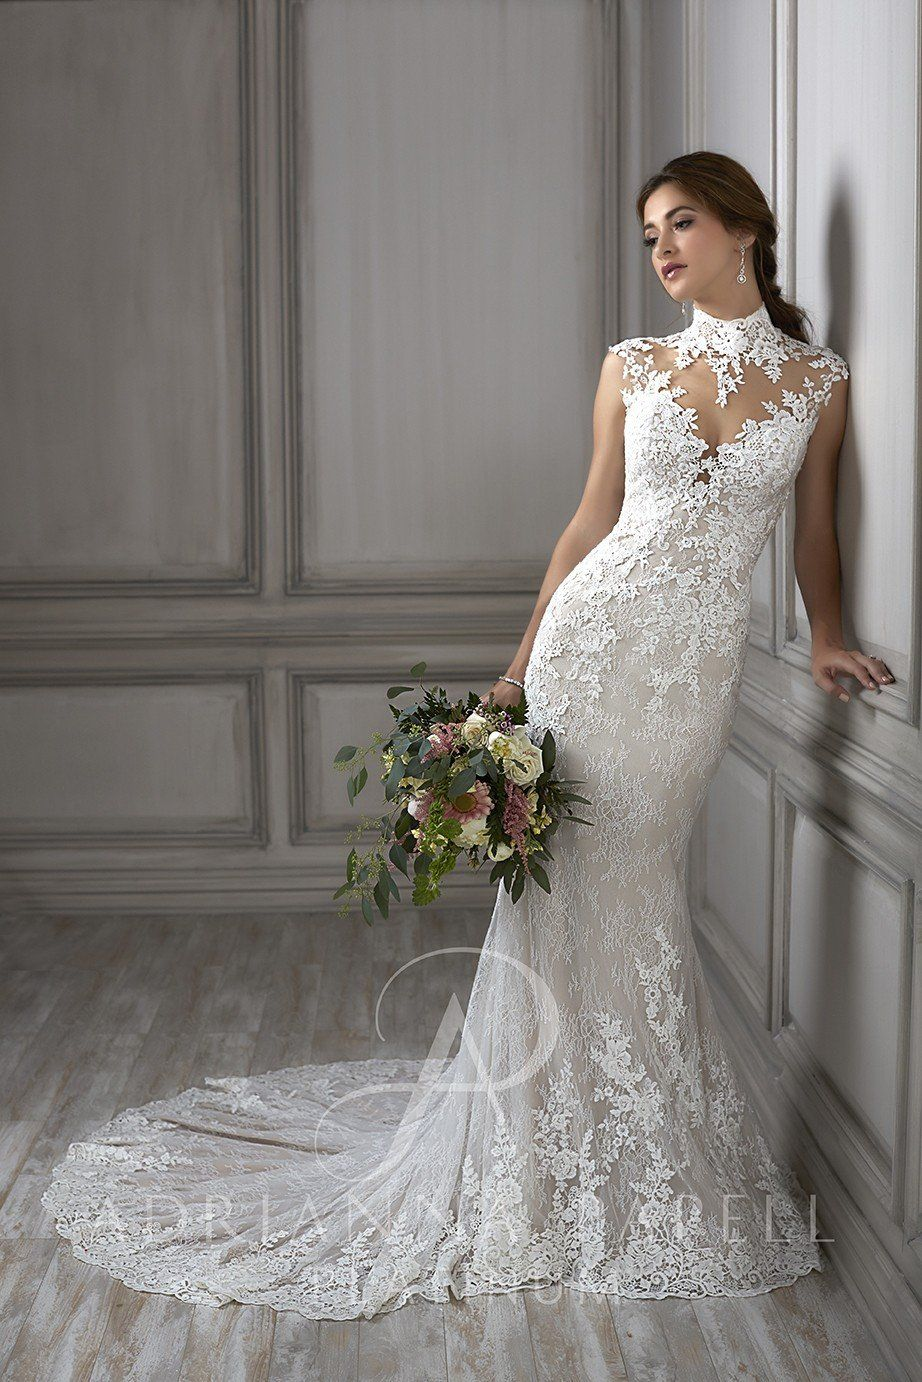 Lace Turtleneck Wedding Dress Luxury Adrianna Papell Della High Neck Fitted Bridal Dress Wedding Dress Types Bridal Dresses High Neck Wedding Dress [ 1382 x 922 Pixel ]